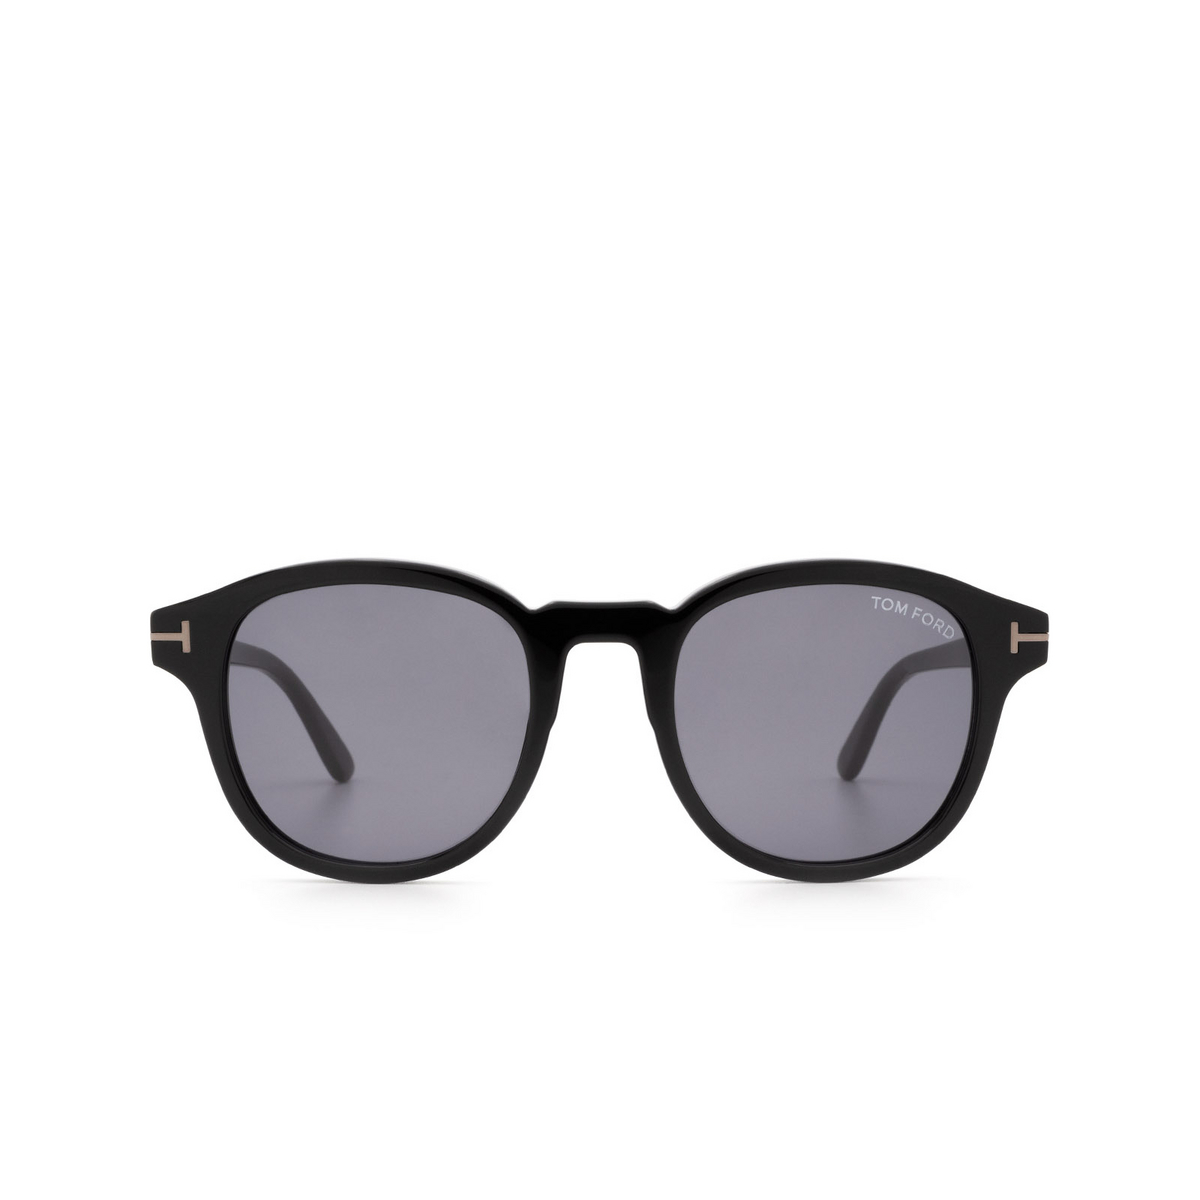 Tom Ford® Square Sunglasses: Jameson FT0752-N color Black 01A - front view.